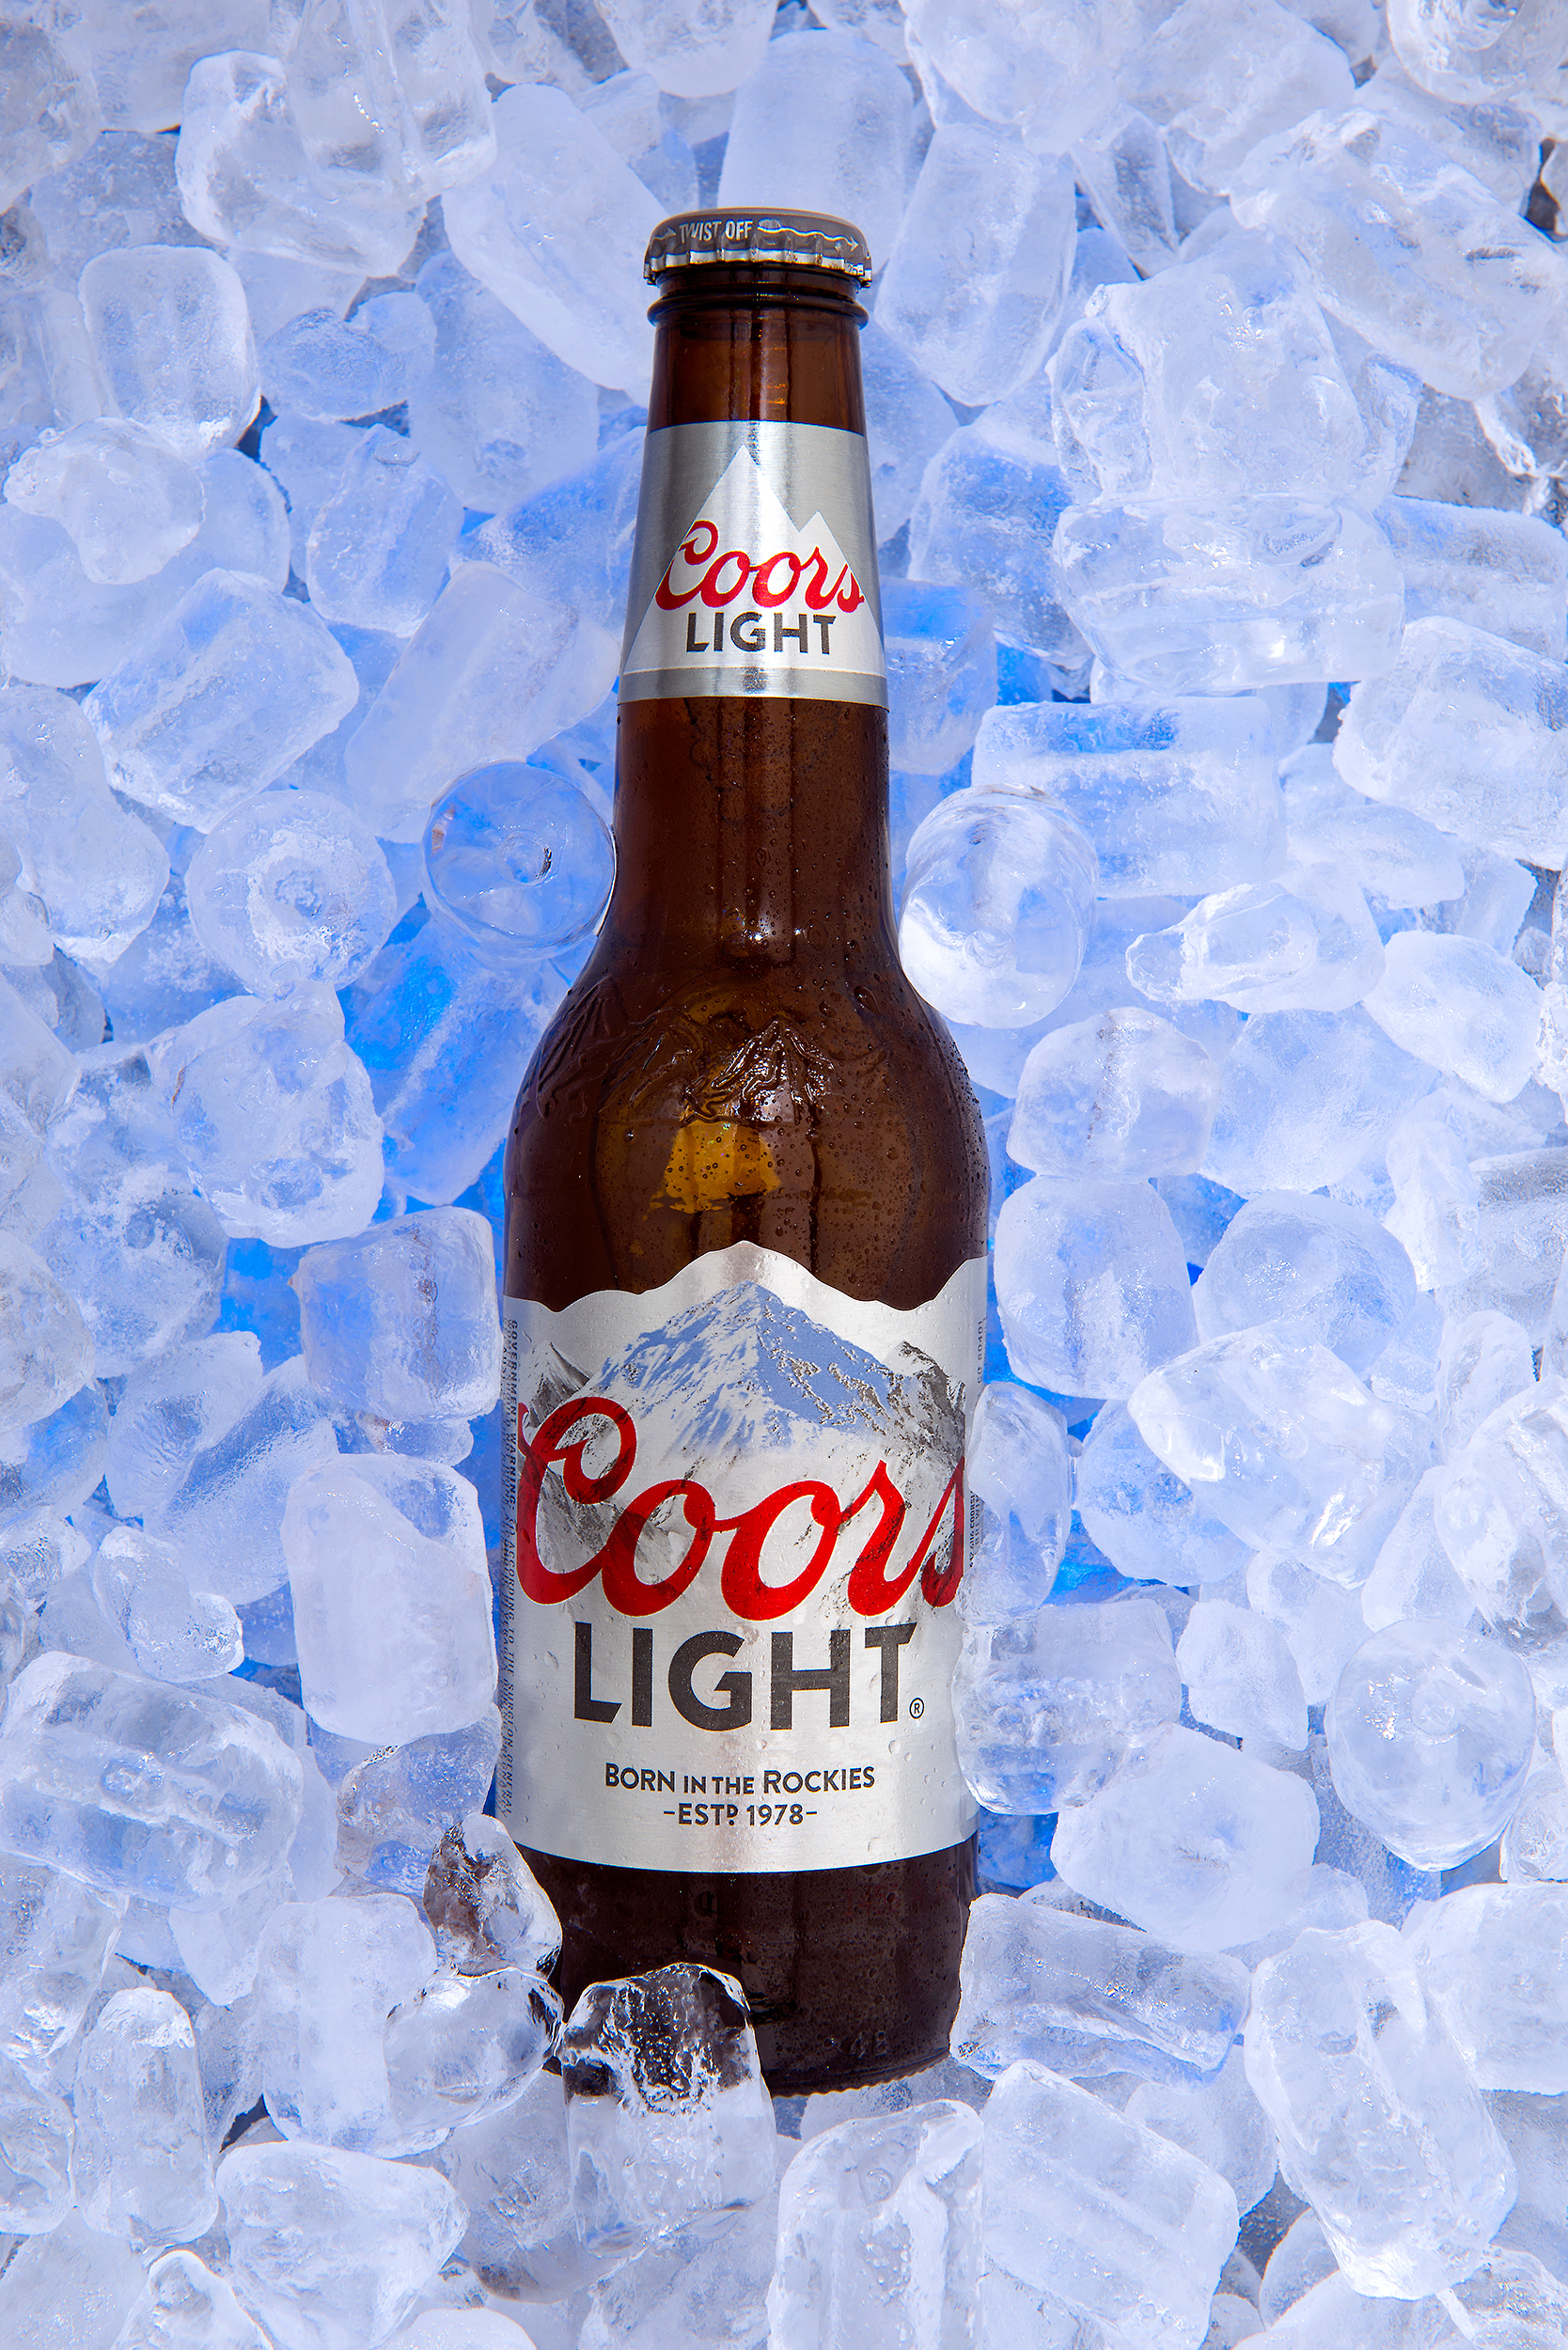 Studio advertising product photo of Coors Light in Ice